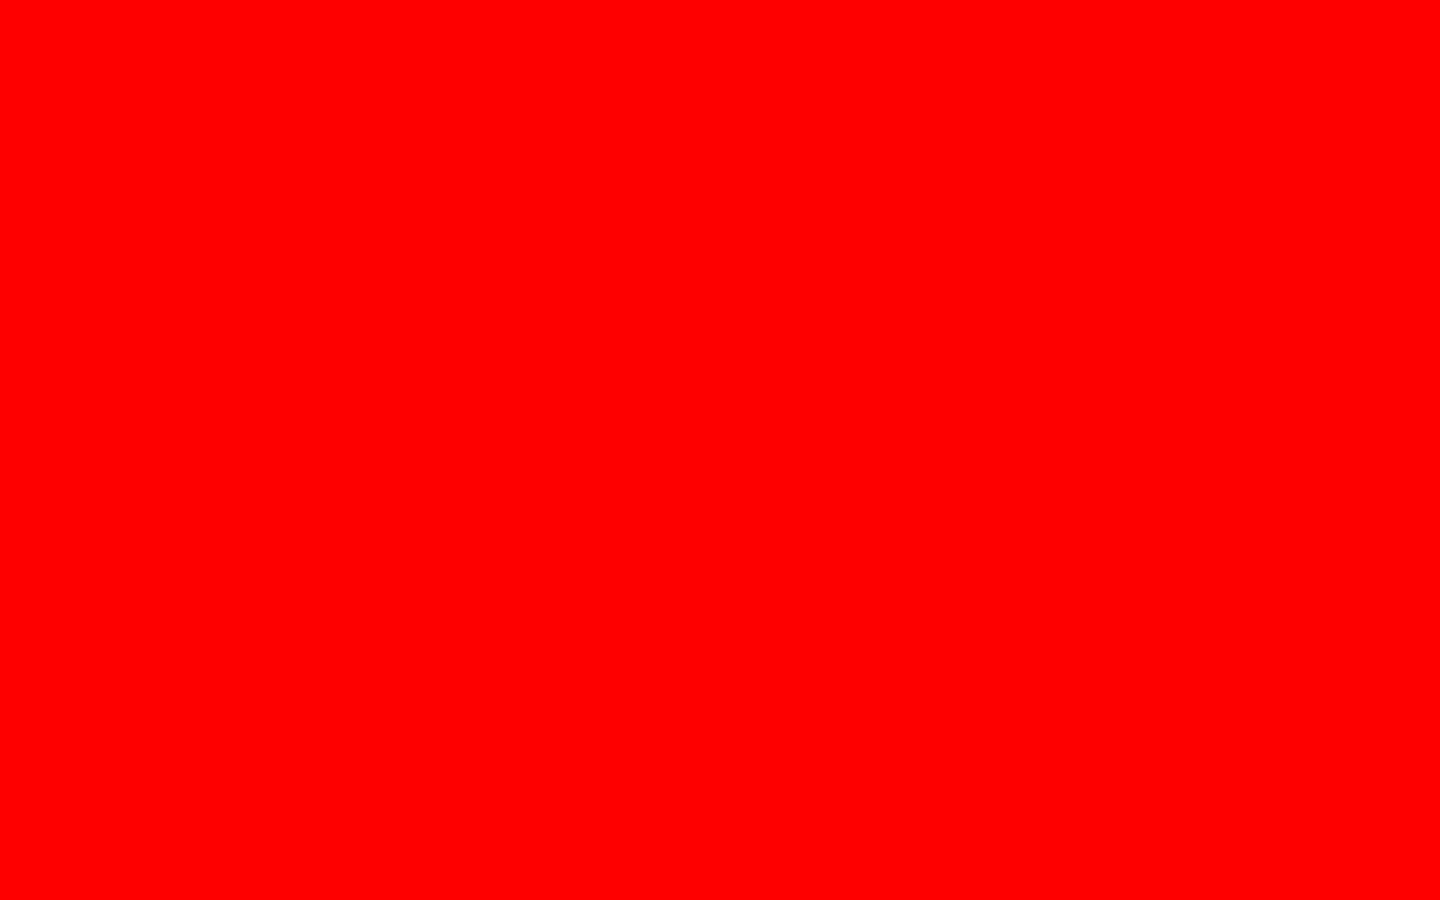 1440x900 Red Solid Color Background